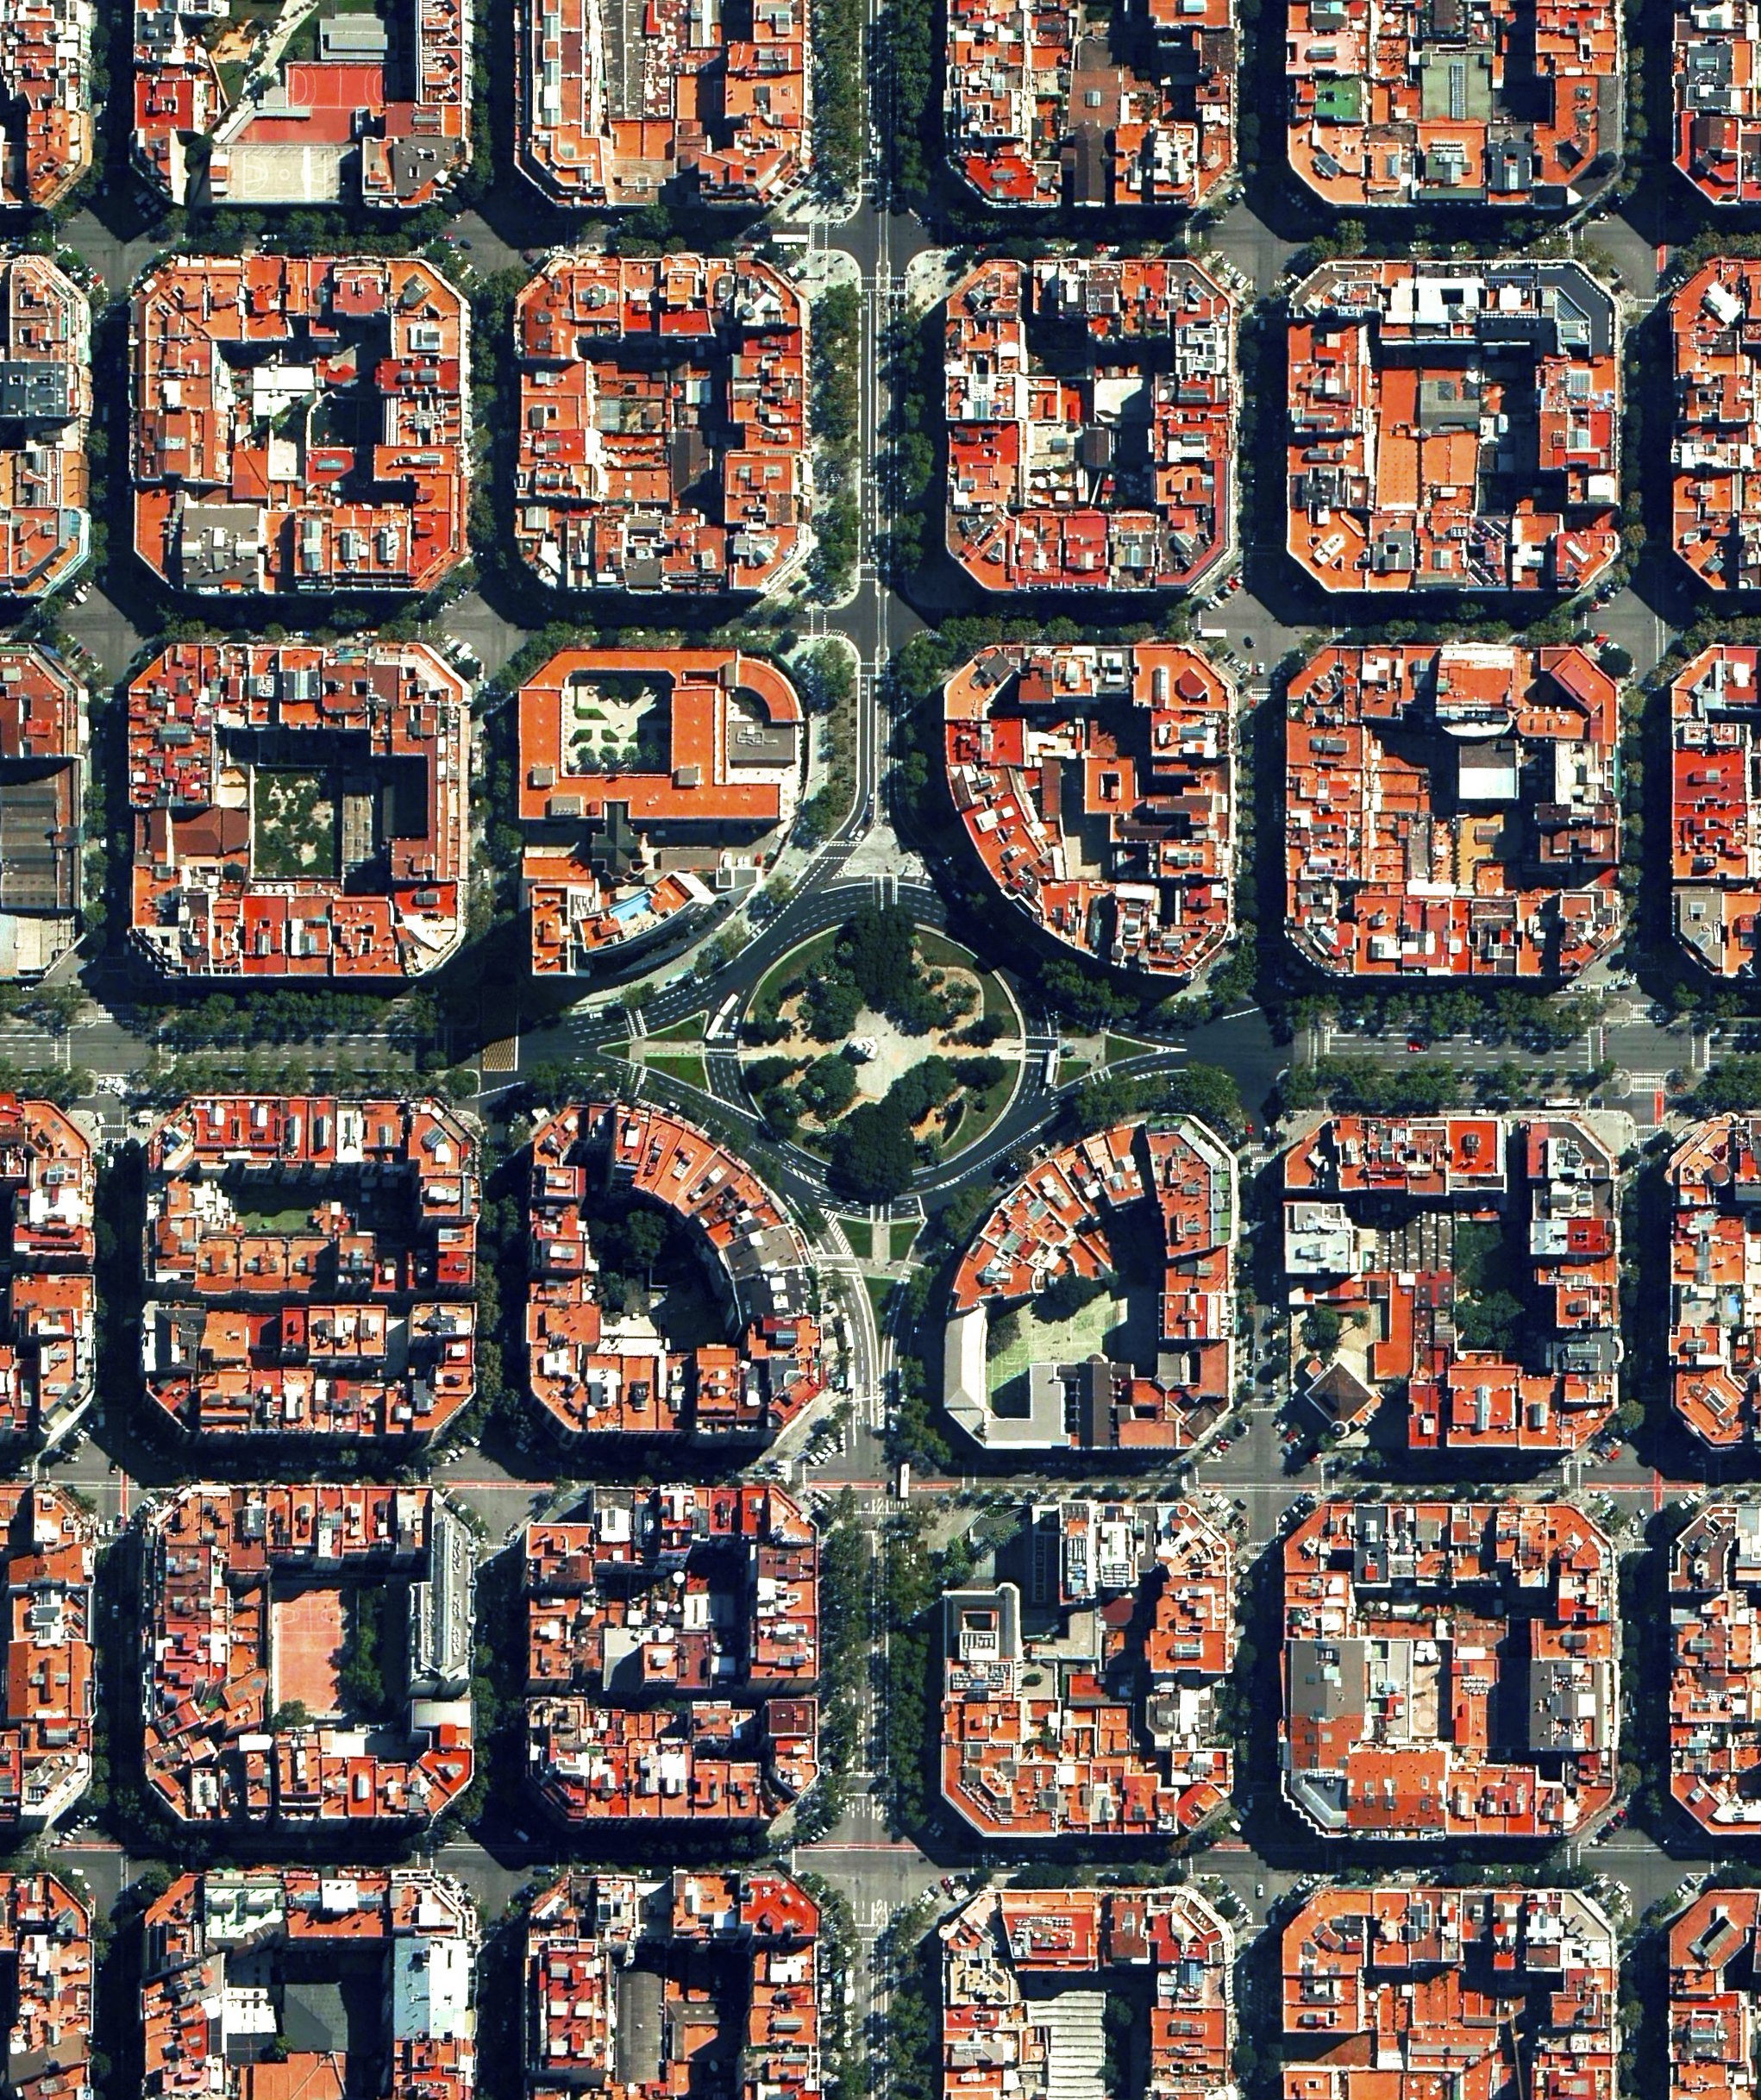 Our thoughts are with the people of Barcelona, Spain following yesterday's gruesome attack on Las Ramblas. The beautiful city attracts visitors from all around the world, a fact made apparent as yesterday's victims came from at least 34 countries. Plaça de Tetuan, located in the city's Eixample district, is seen in this Overview.  41.394921°N 2.175507°E